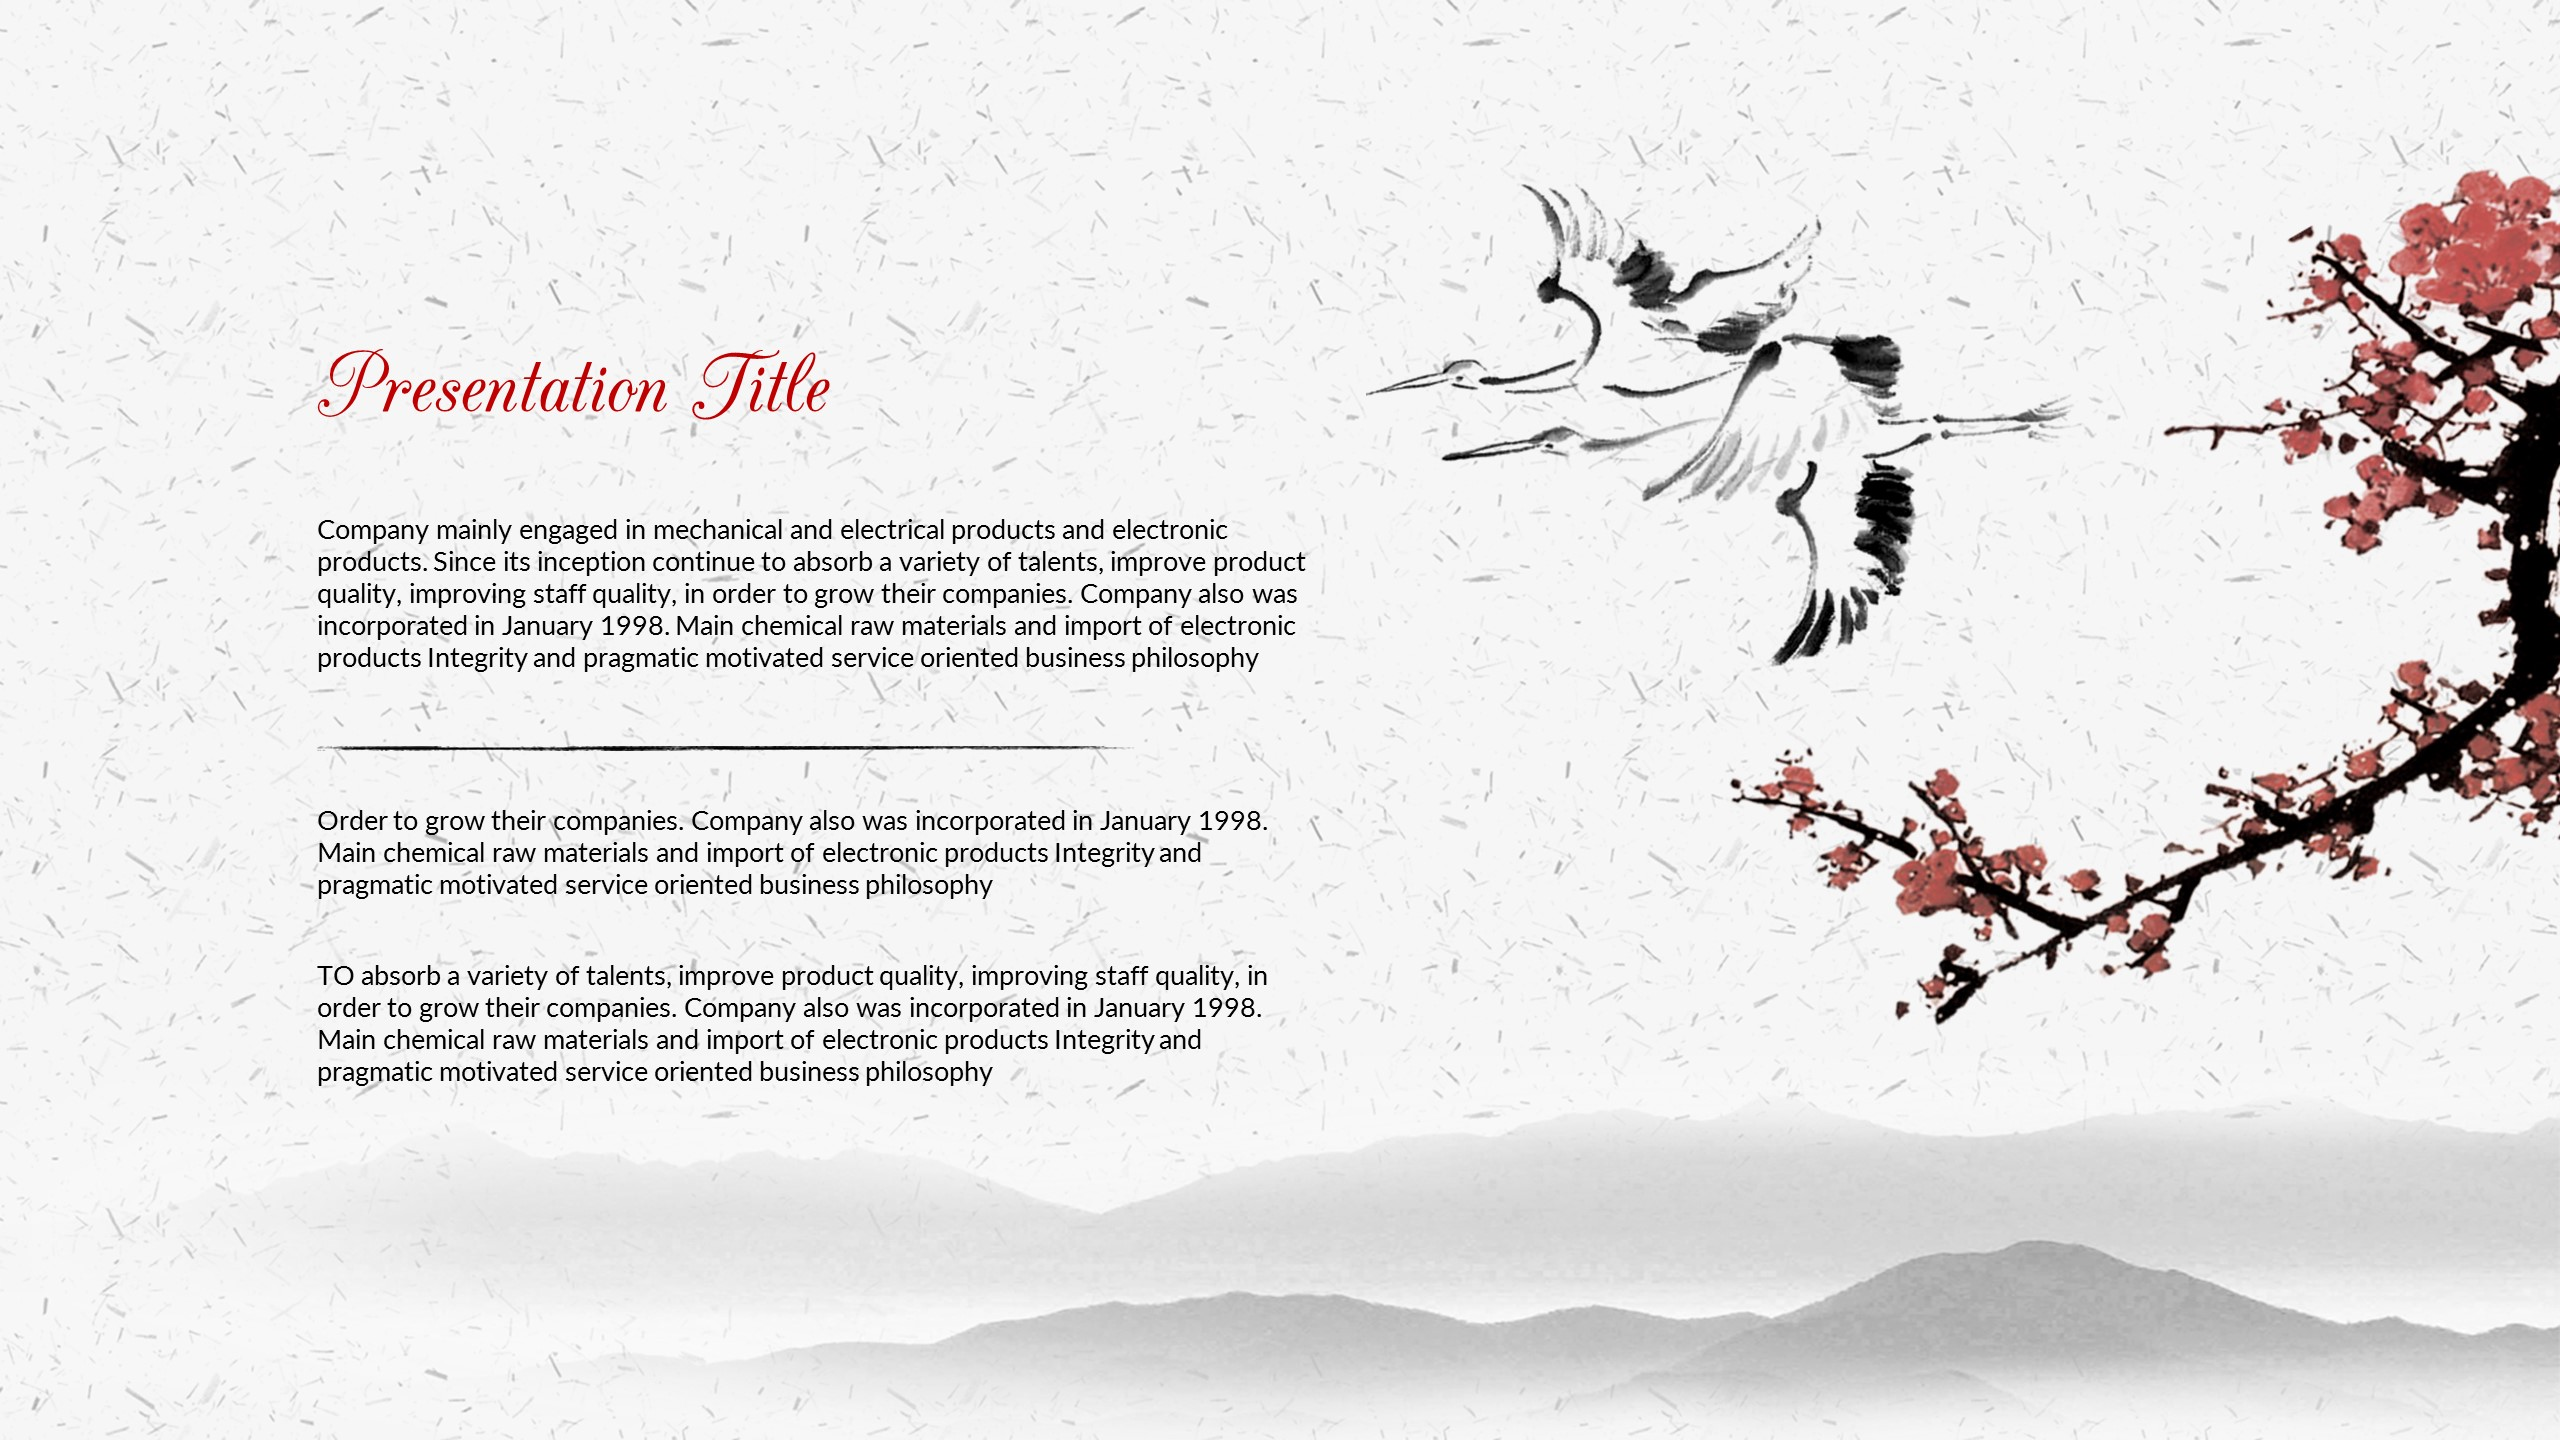 Chinese style powerpoint presentation by 5yue graphicriver chinese style powerpoint presentation creative powerpoint templates 002chinese stylep002 1 toneelgroepblik